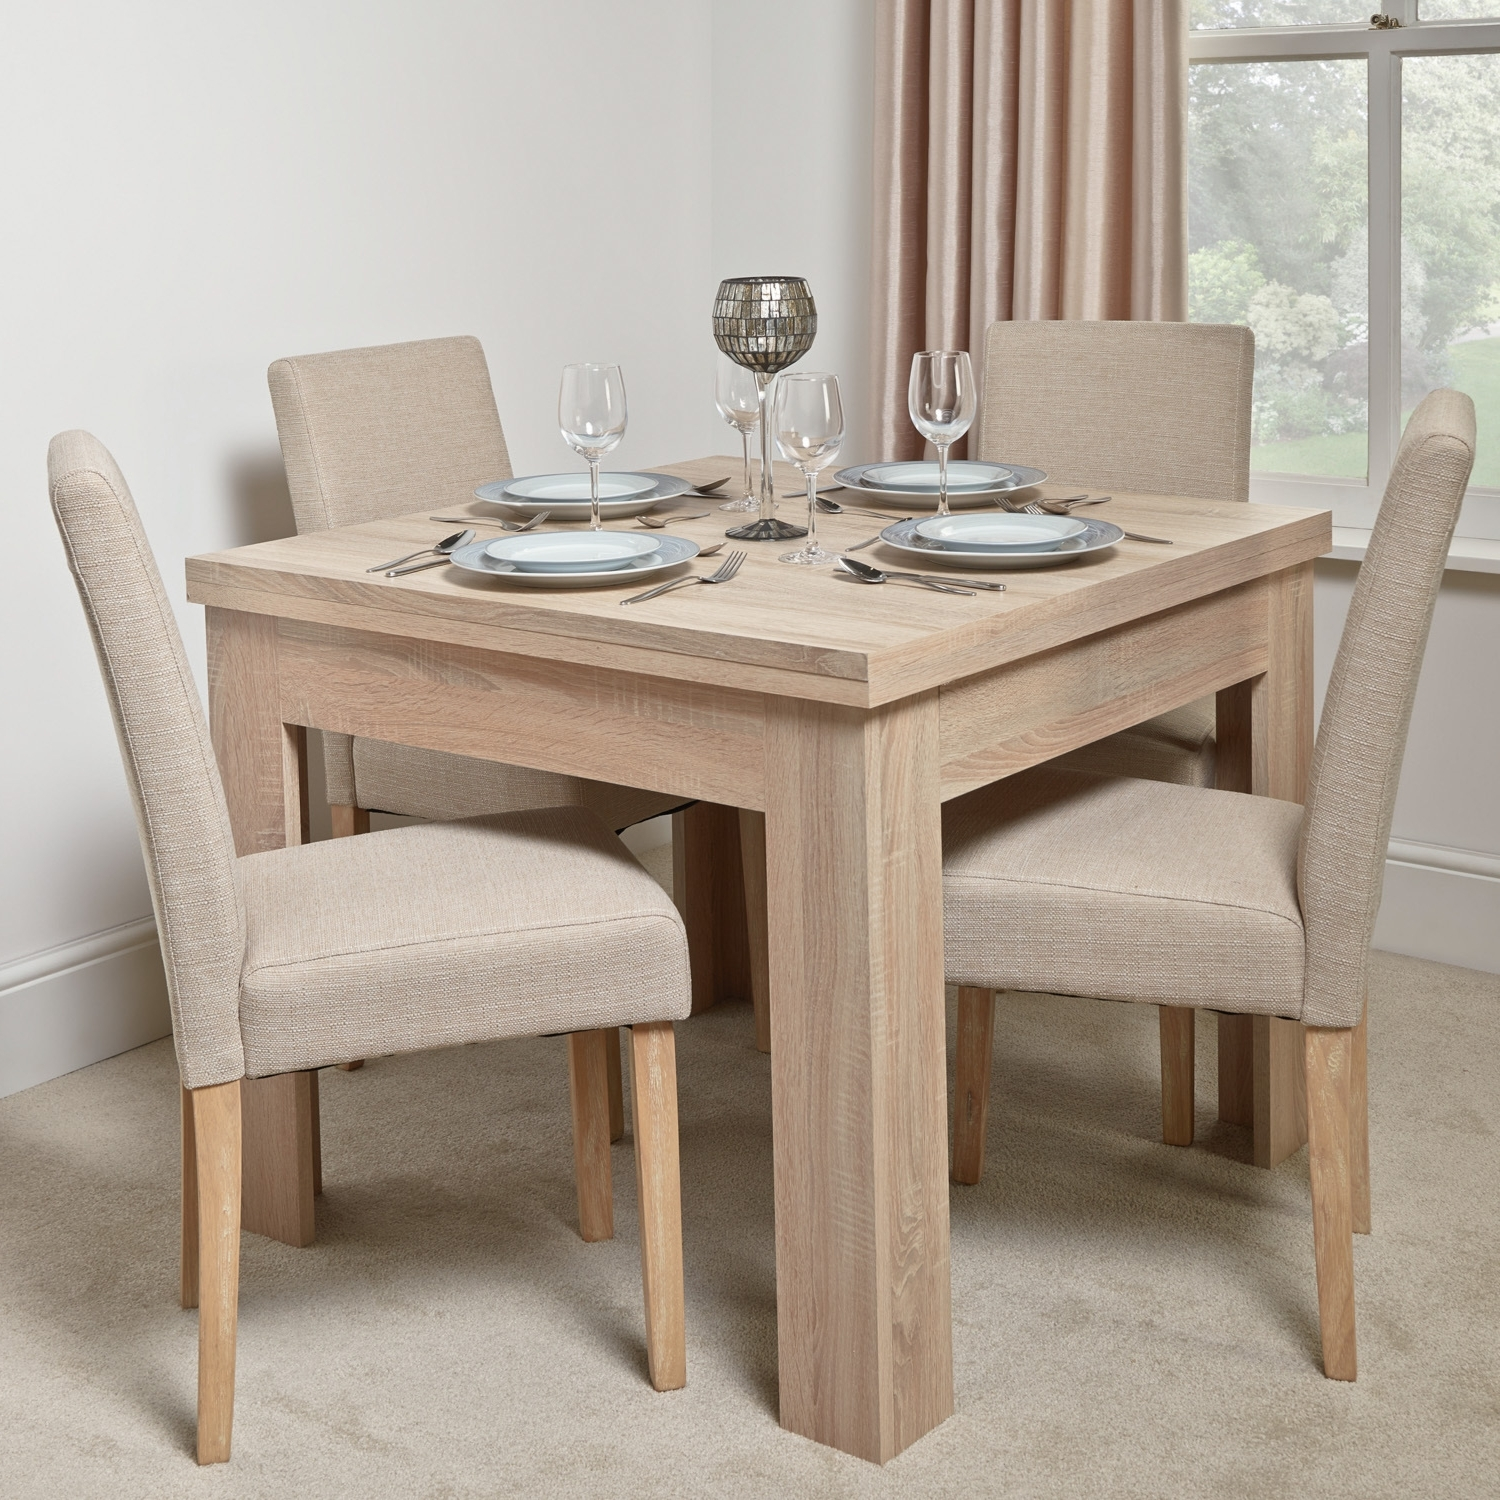 Extendable Dining Table And 6 Chairs Regarding Widely Used Calpe Flip Extending Dining Table (View 13 of 25)